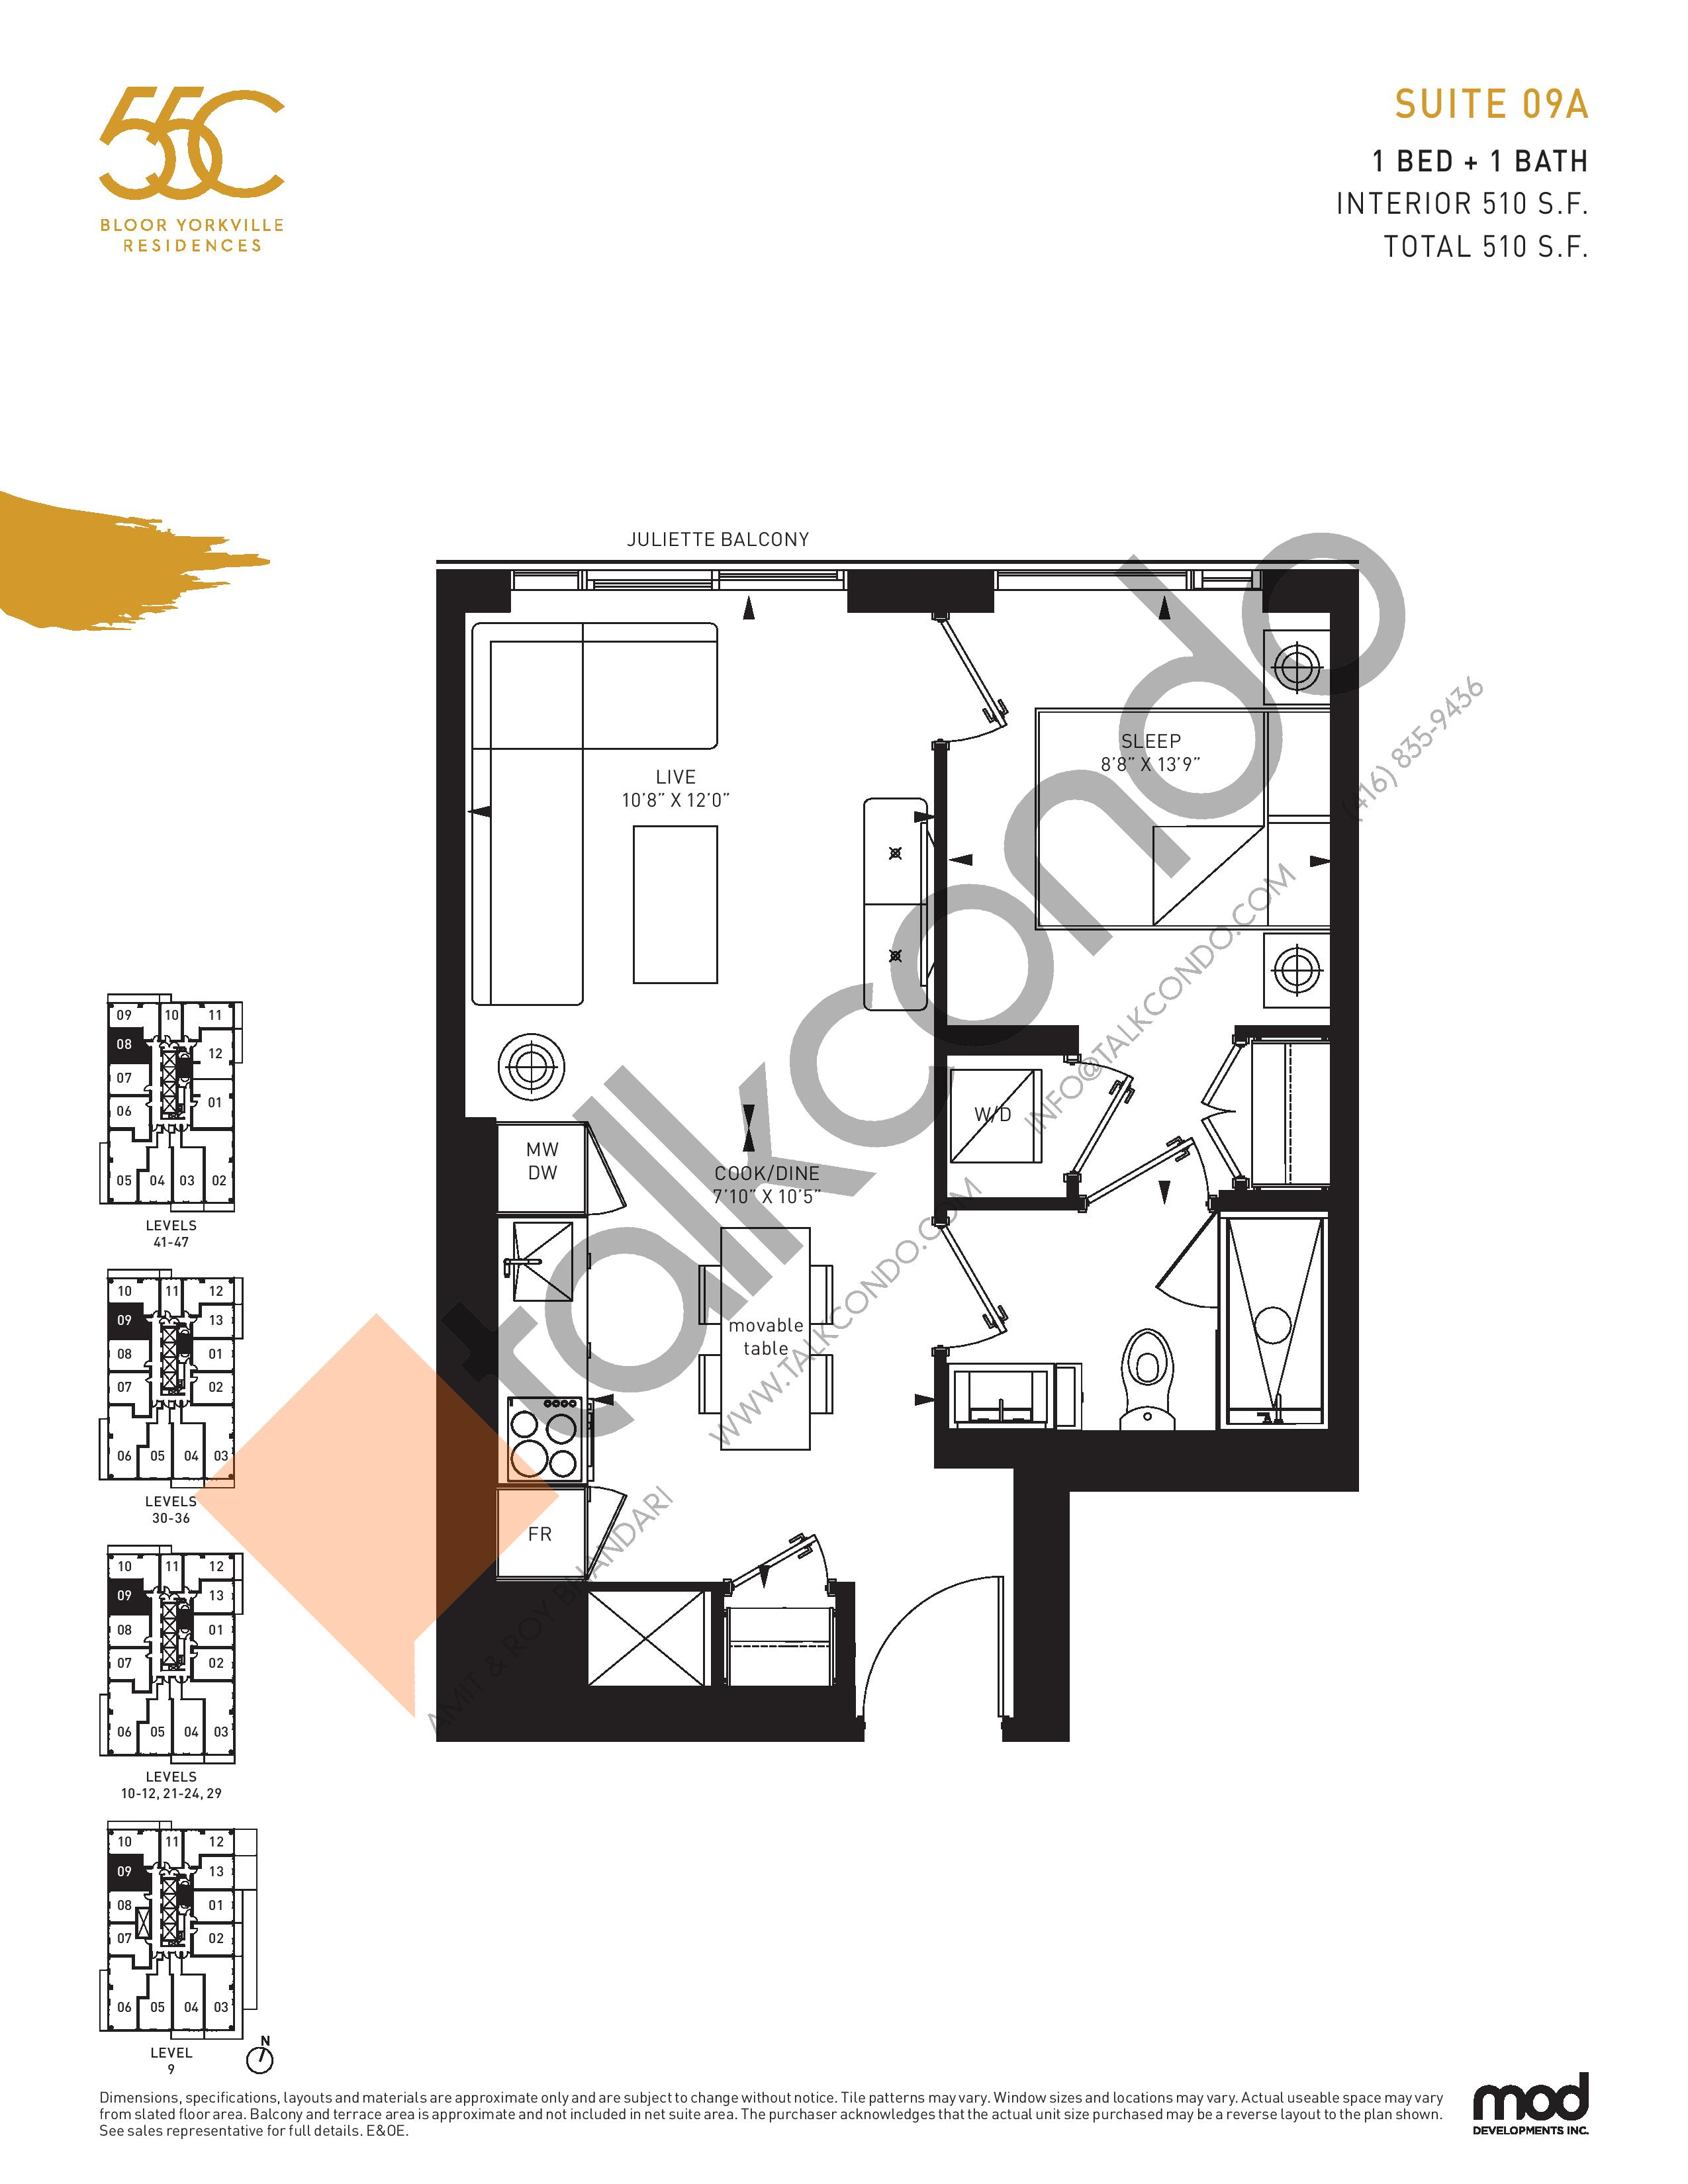 Suite 09A Floor Plan at 55C Condos - 510 sq.ft